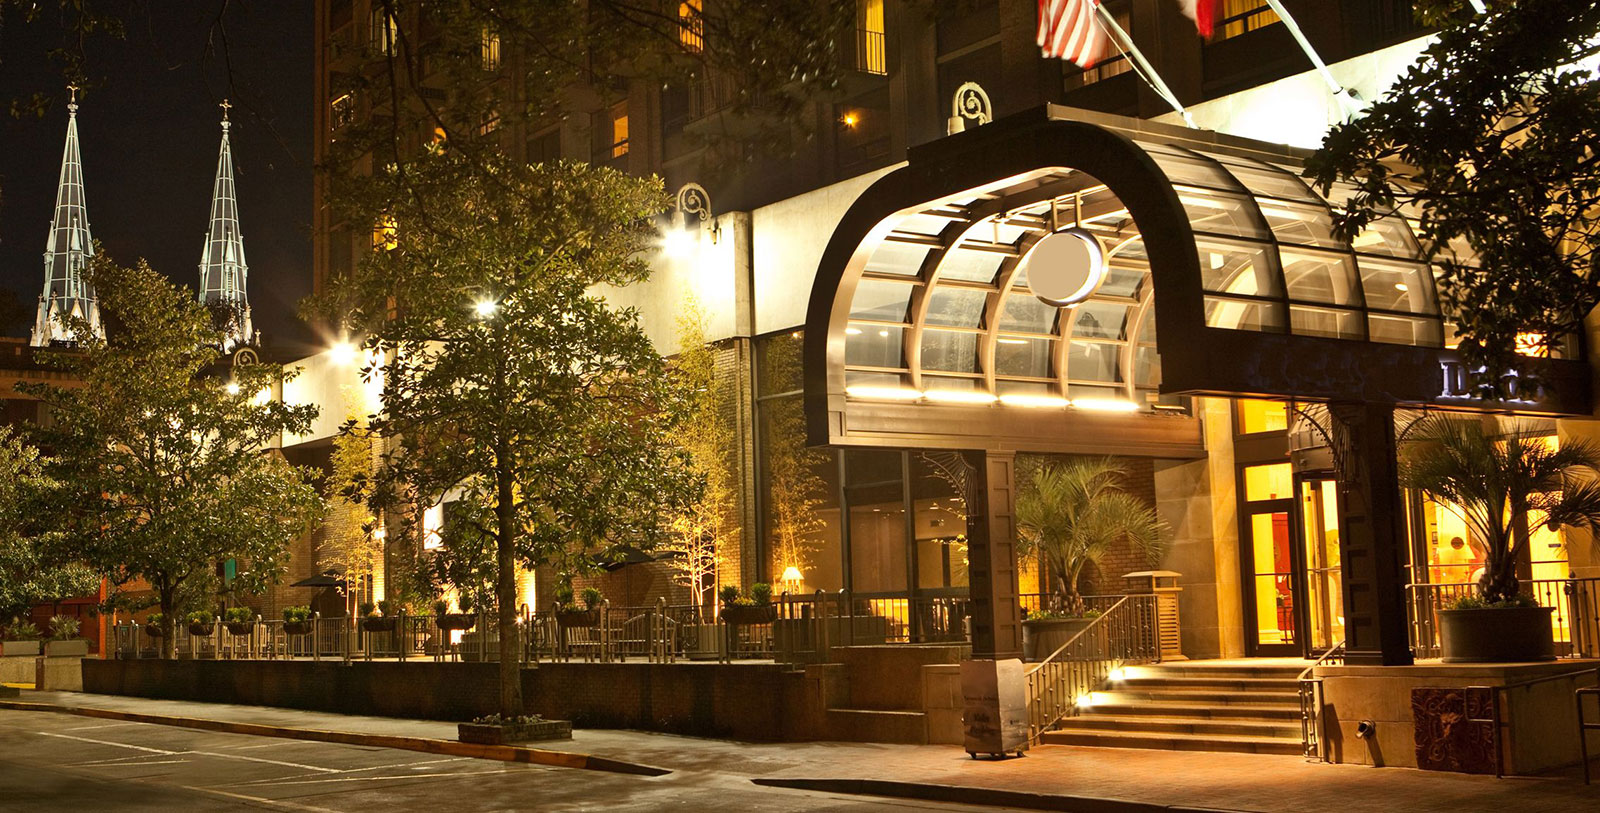 Image of Exterior Night, The DeSoto, 1890, Member of Historic Hotels of America, in Savannah, Georgia, Special Offers, Discounted Rates, Families, Romantic Escape, Honeymoons, Anniversaries, Reunions